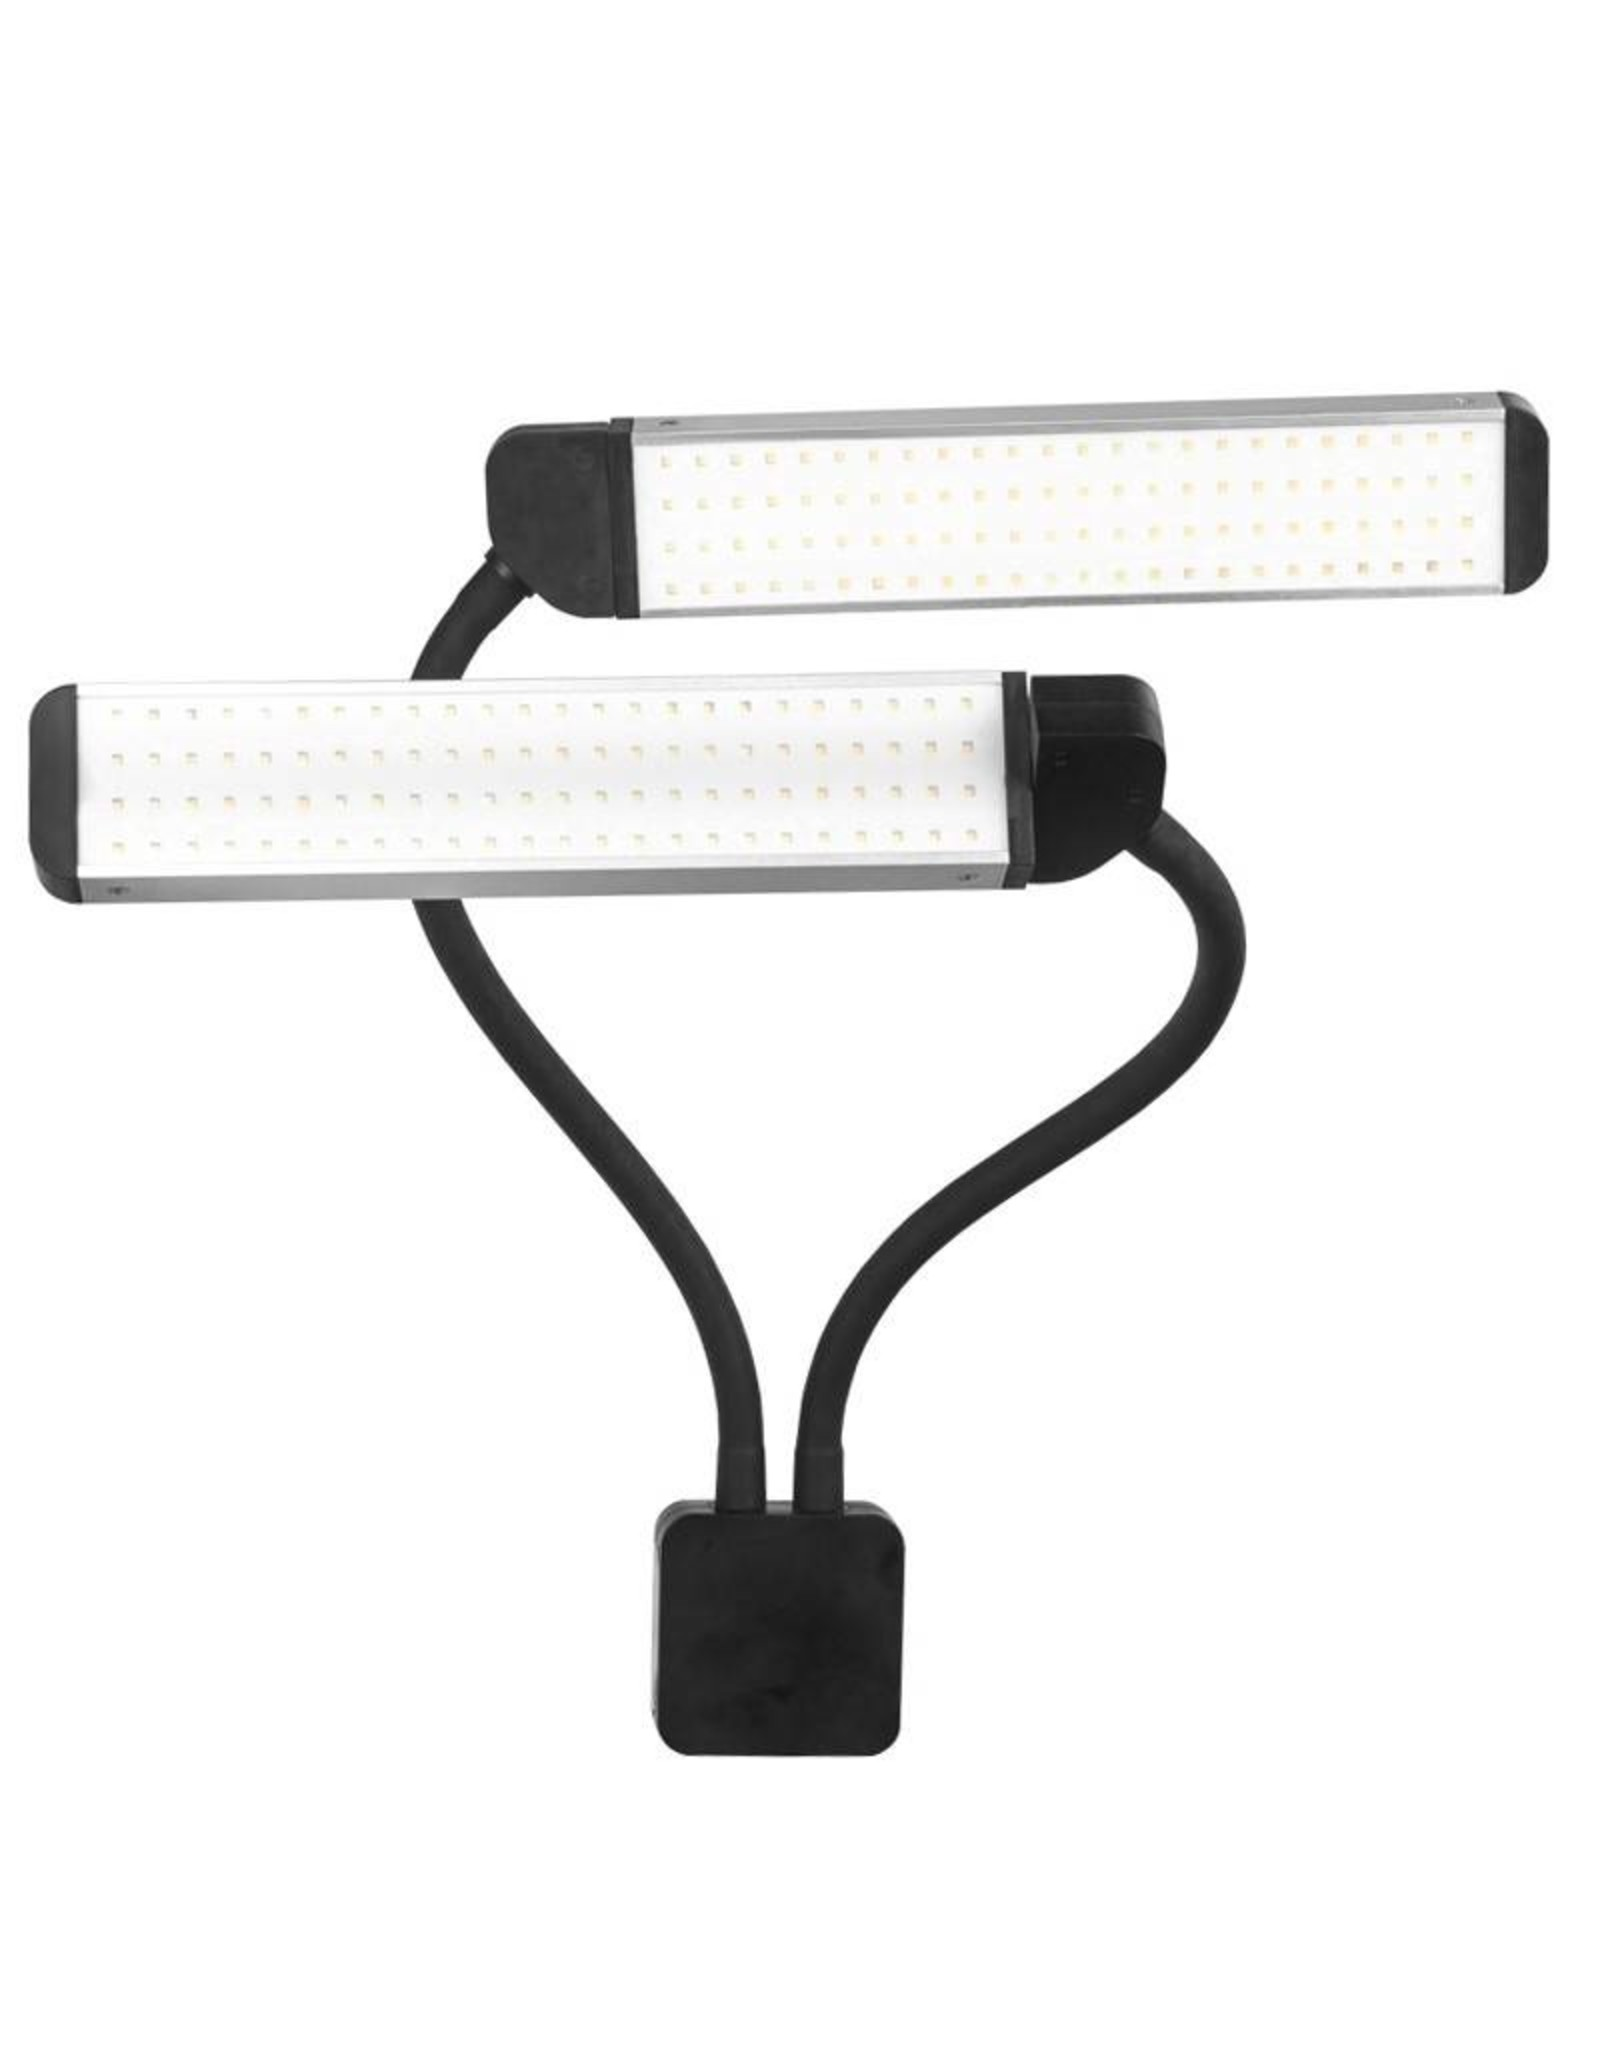 Merkloos LED Lamp voor wimpers en make up